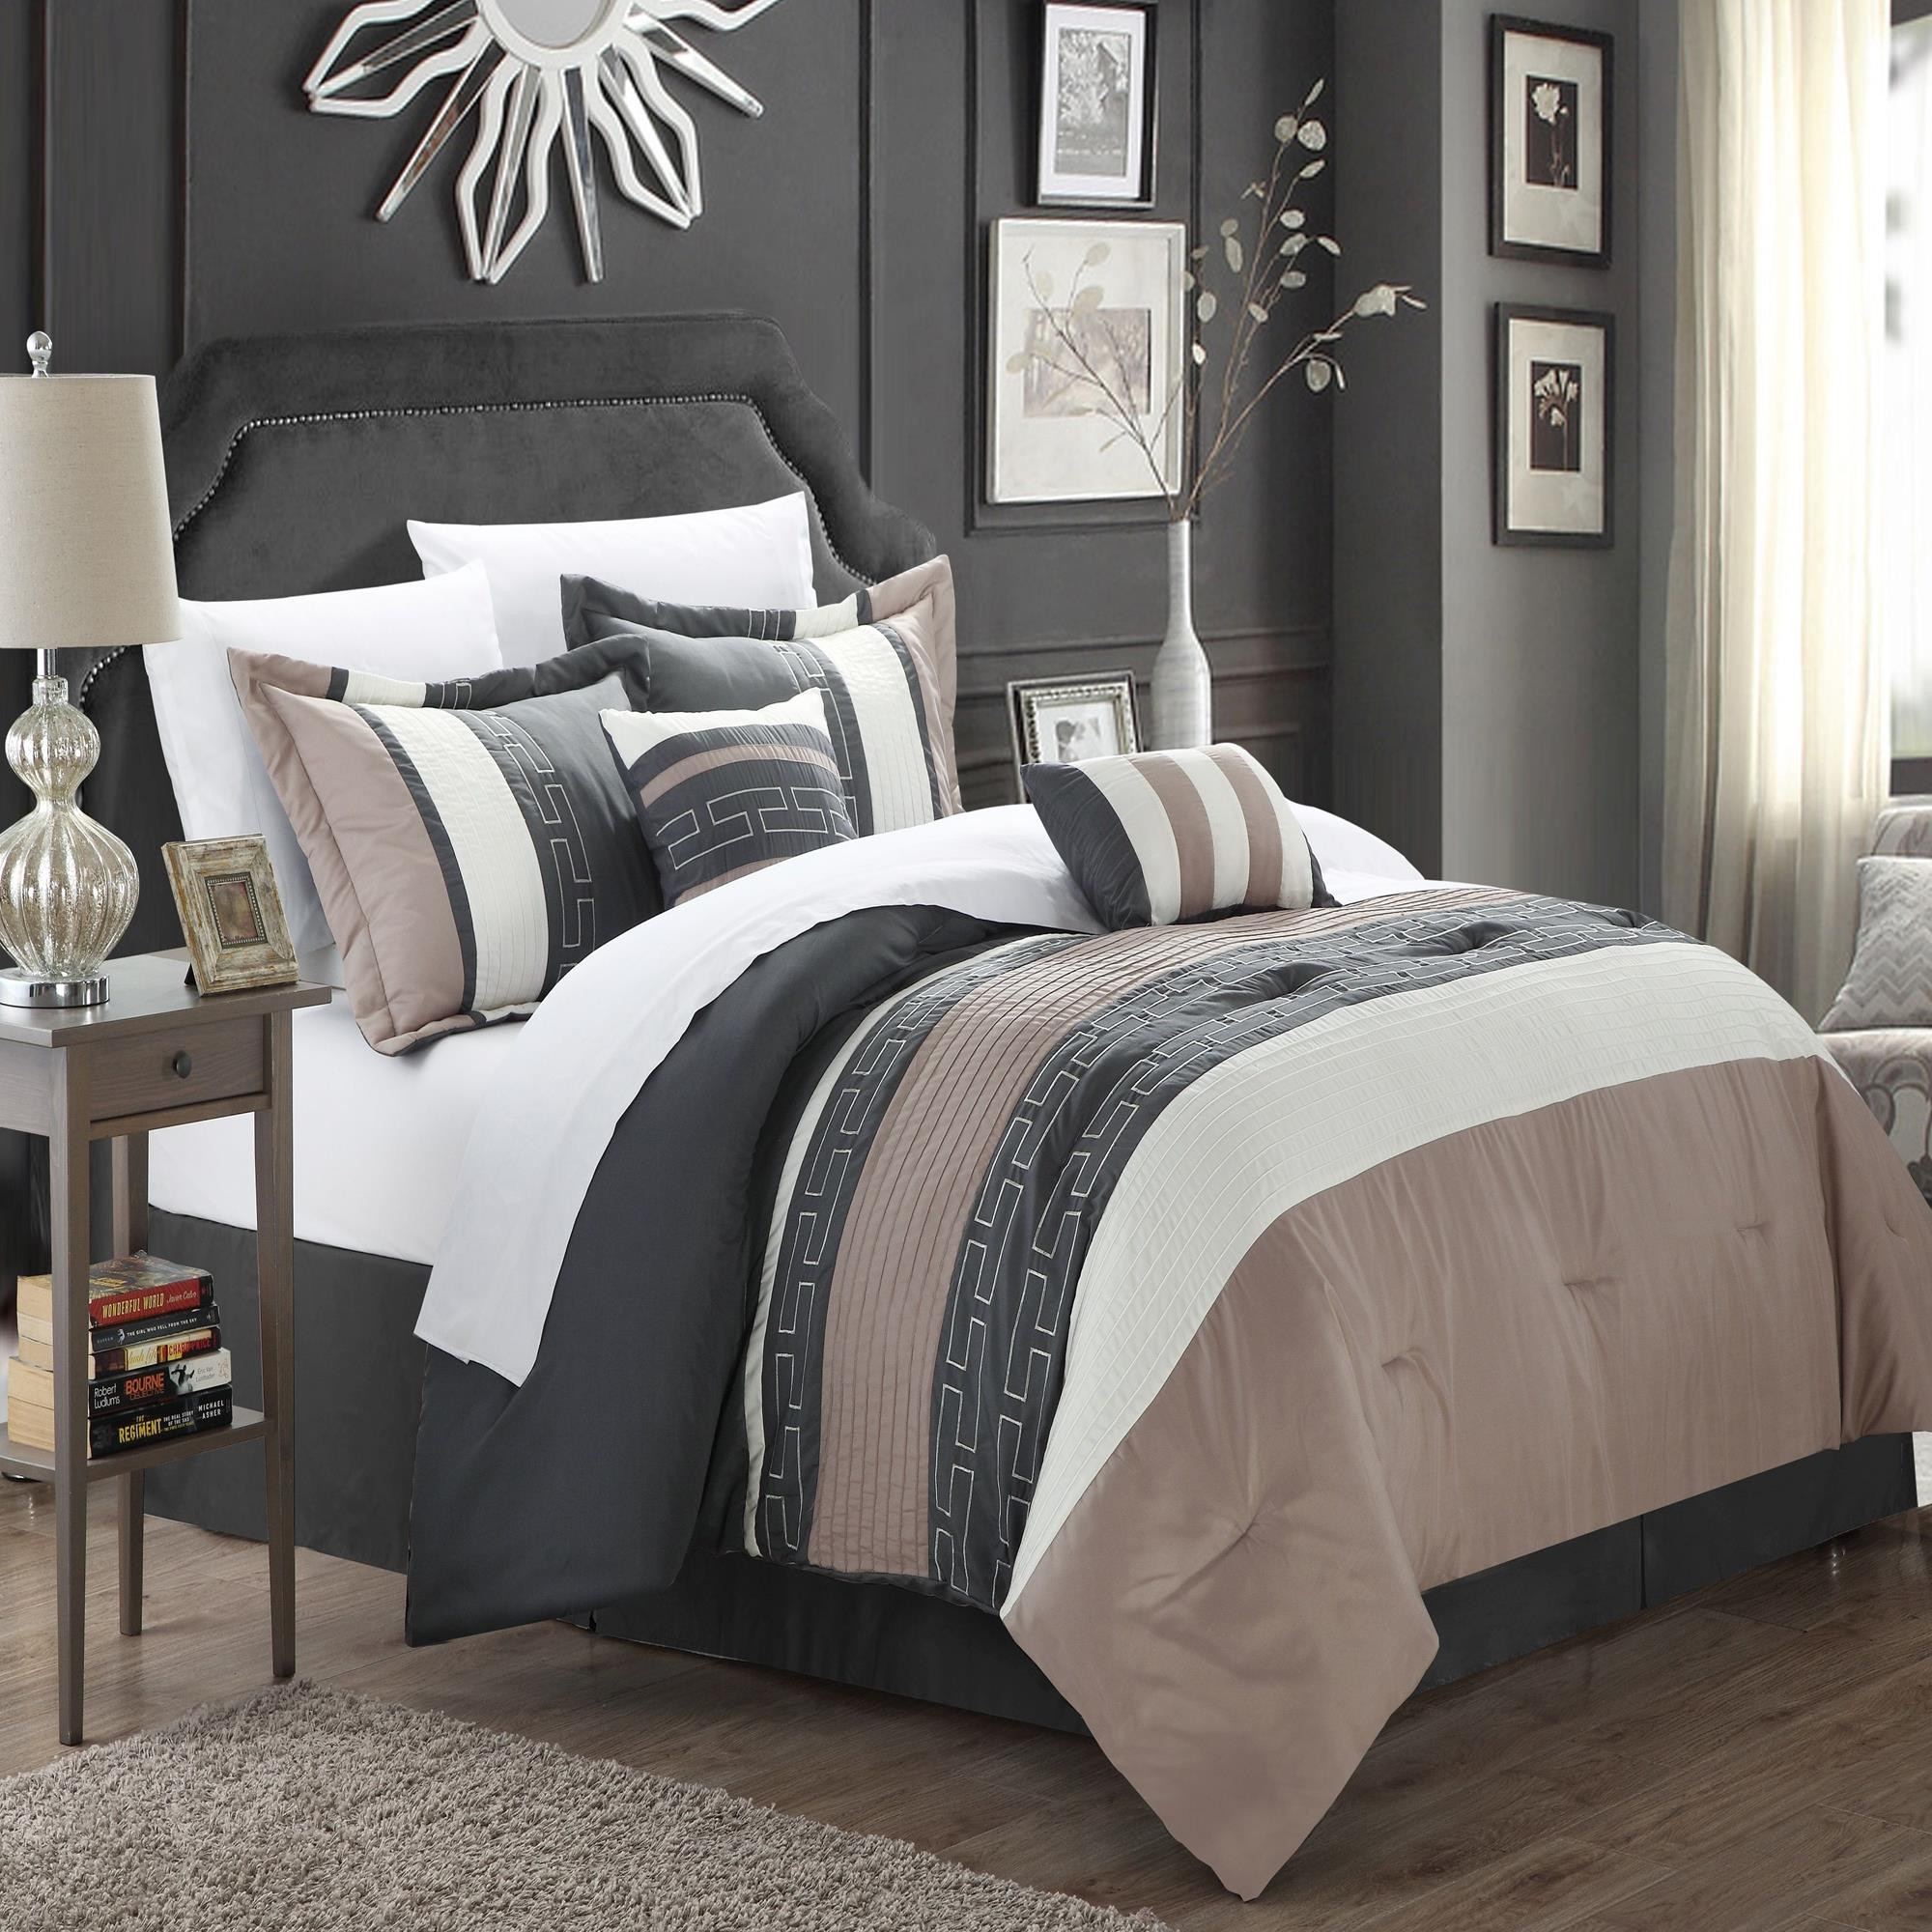 Carlton Taupe Grey Amp Tan 10 Piece Comforter Bed In A Bag